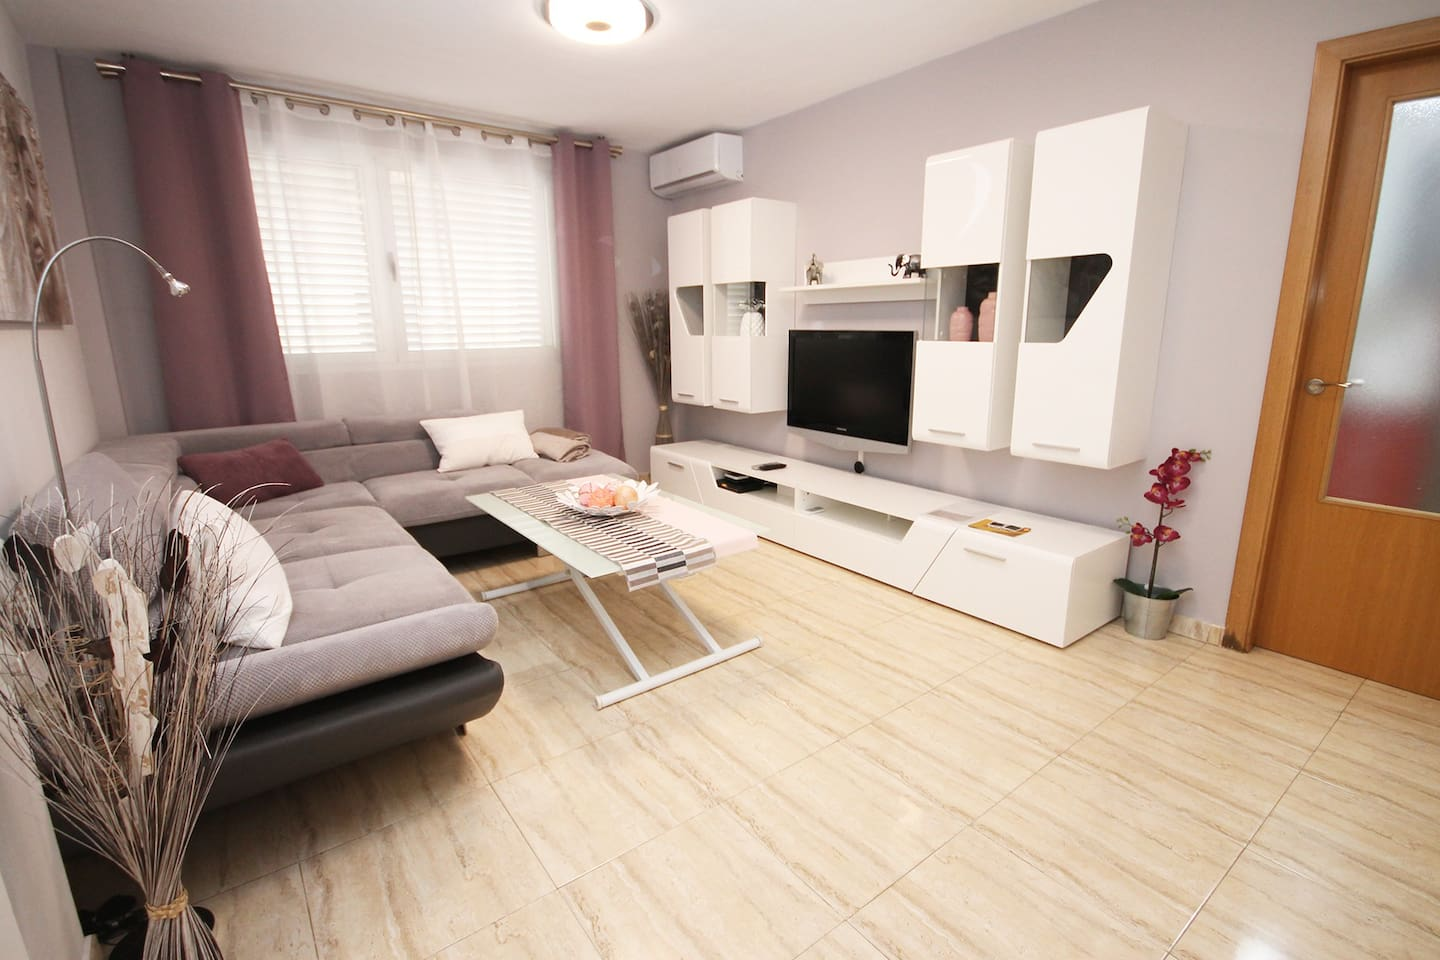 Modern stylish apartment/ Moderne Wohnung - Apartments for Rent in ...